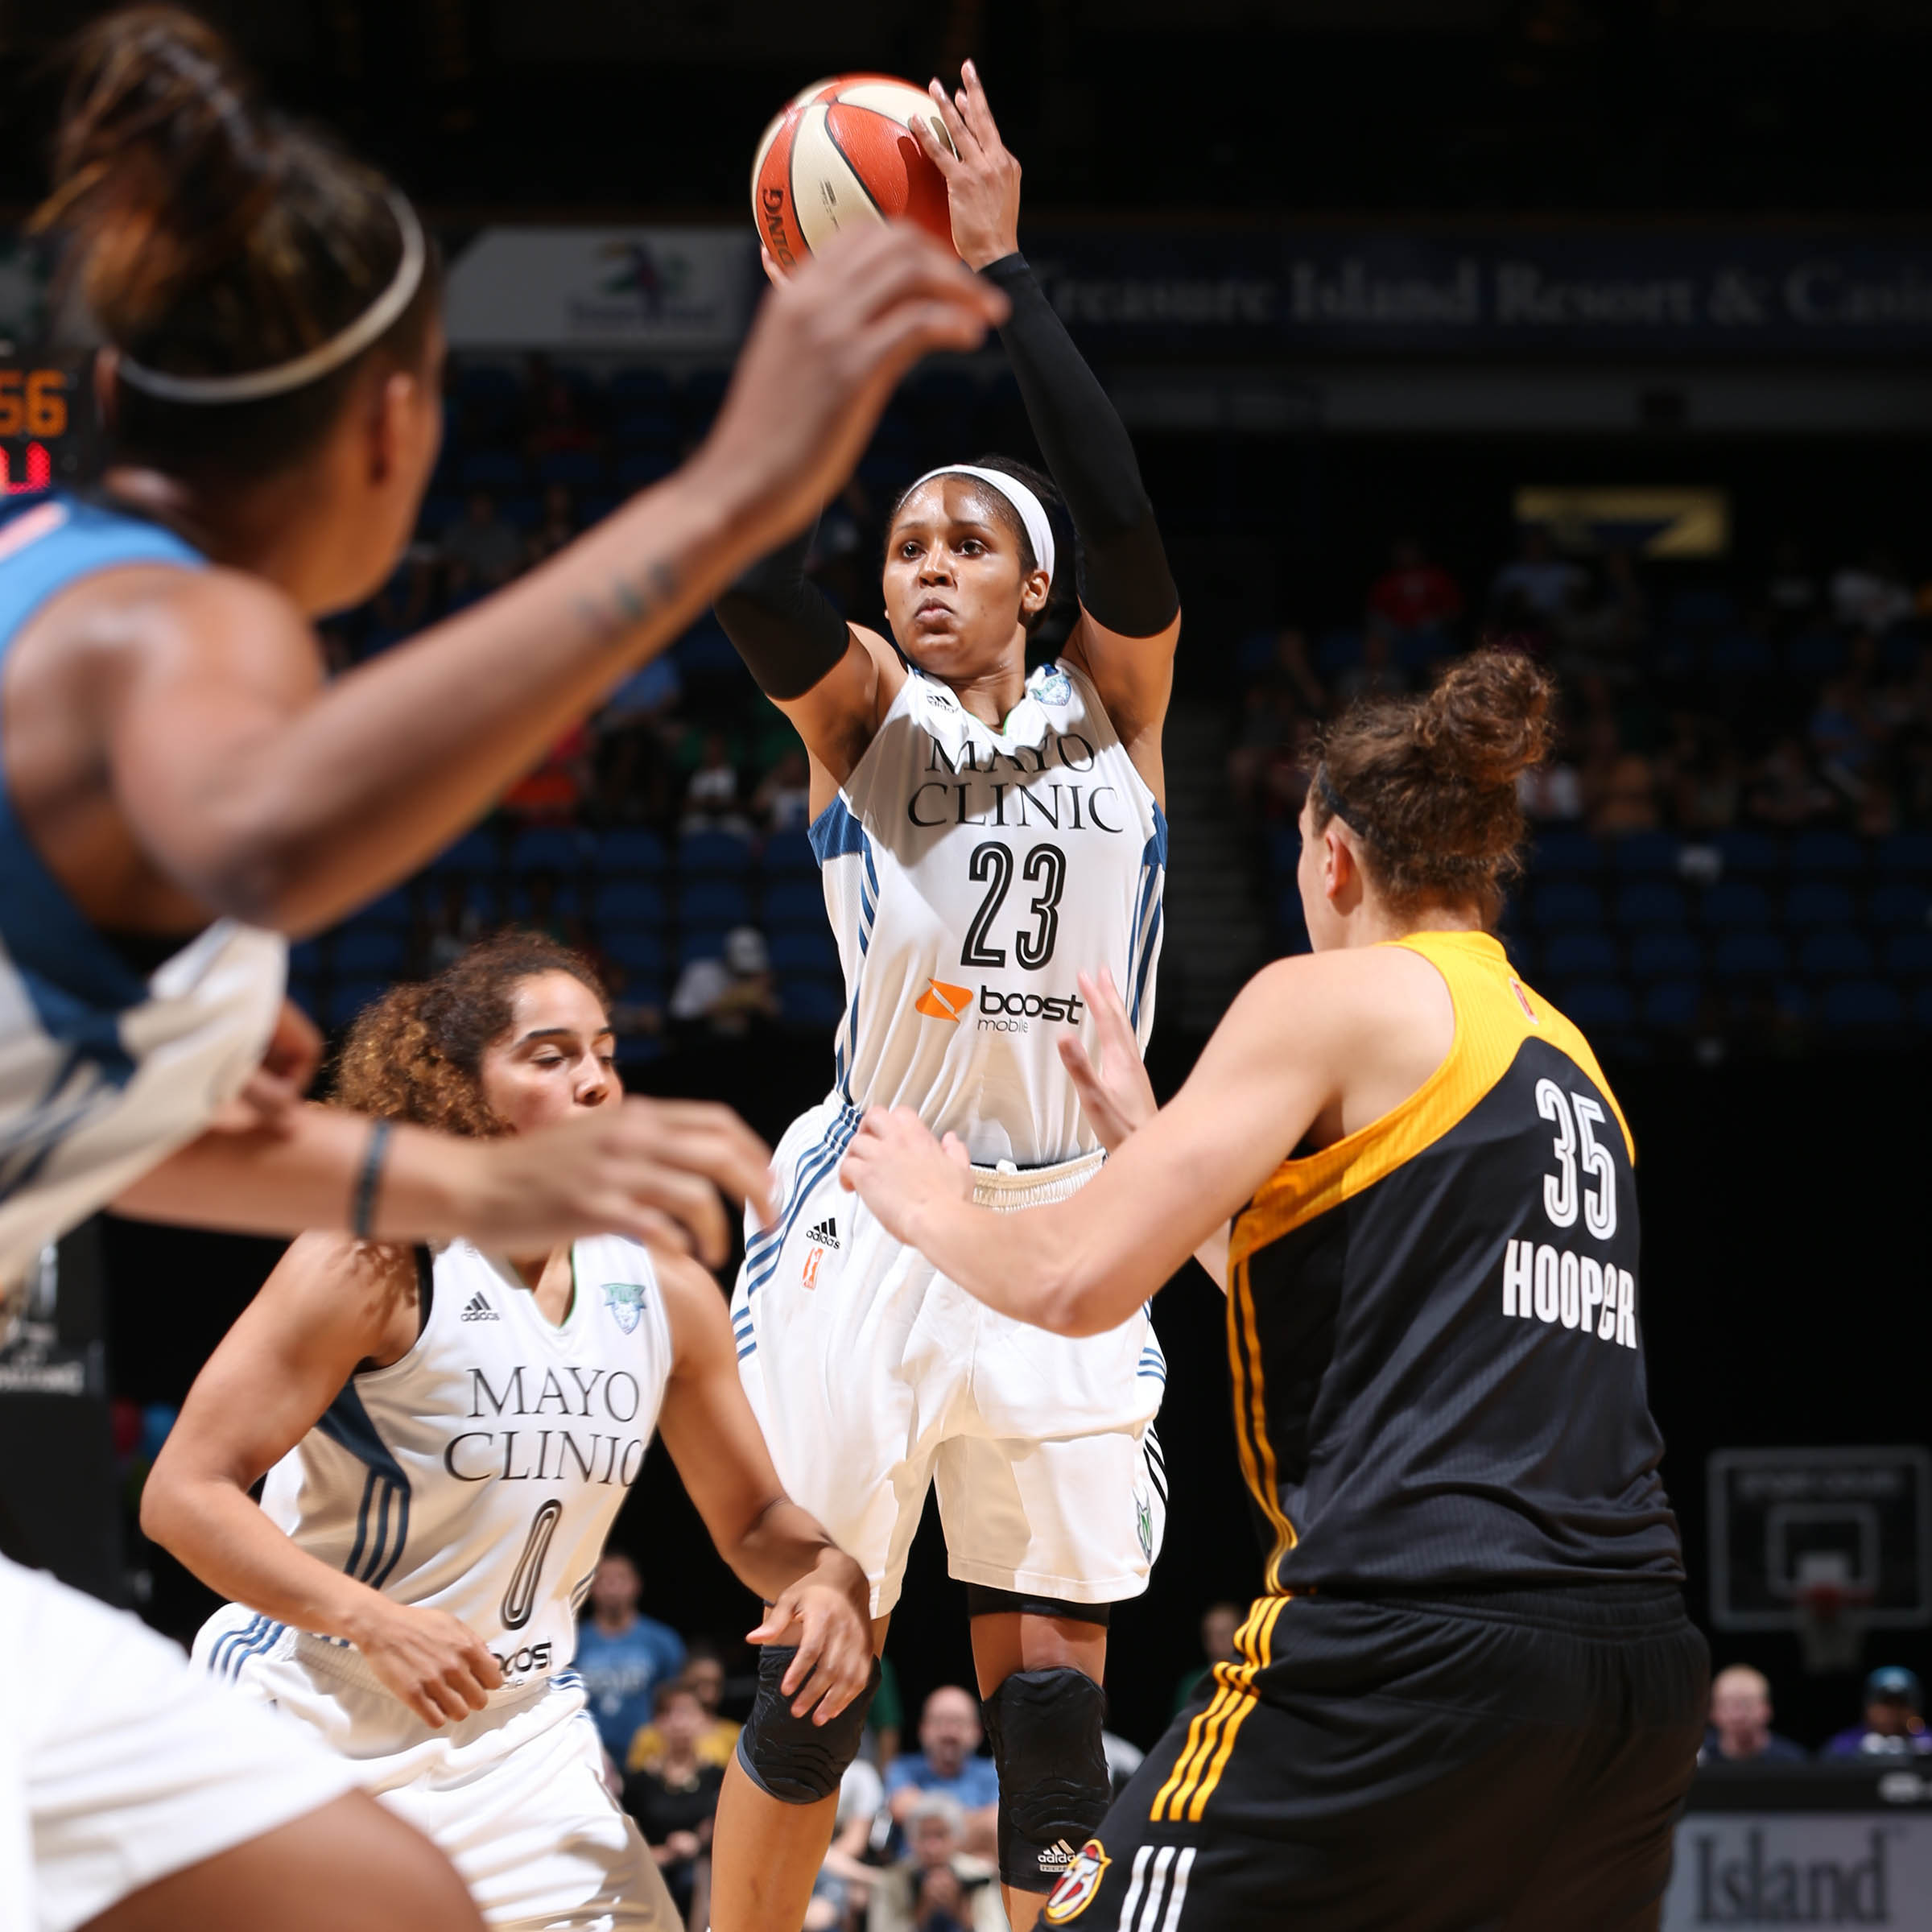 Lynx forward Maya Moore finished the game with 16 points, eight rebounds and six assists.